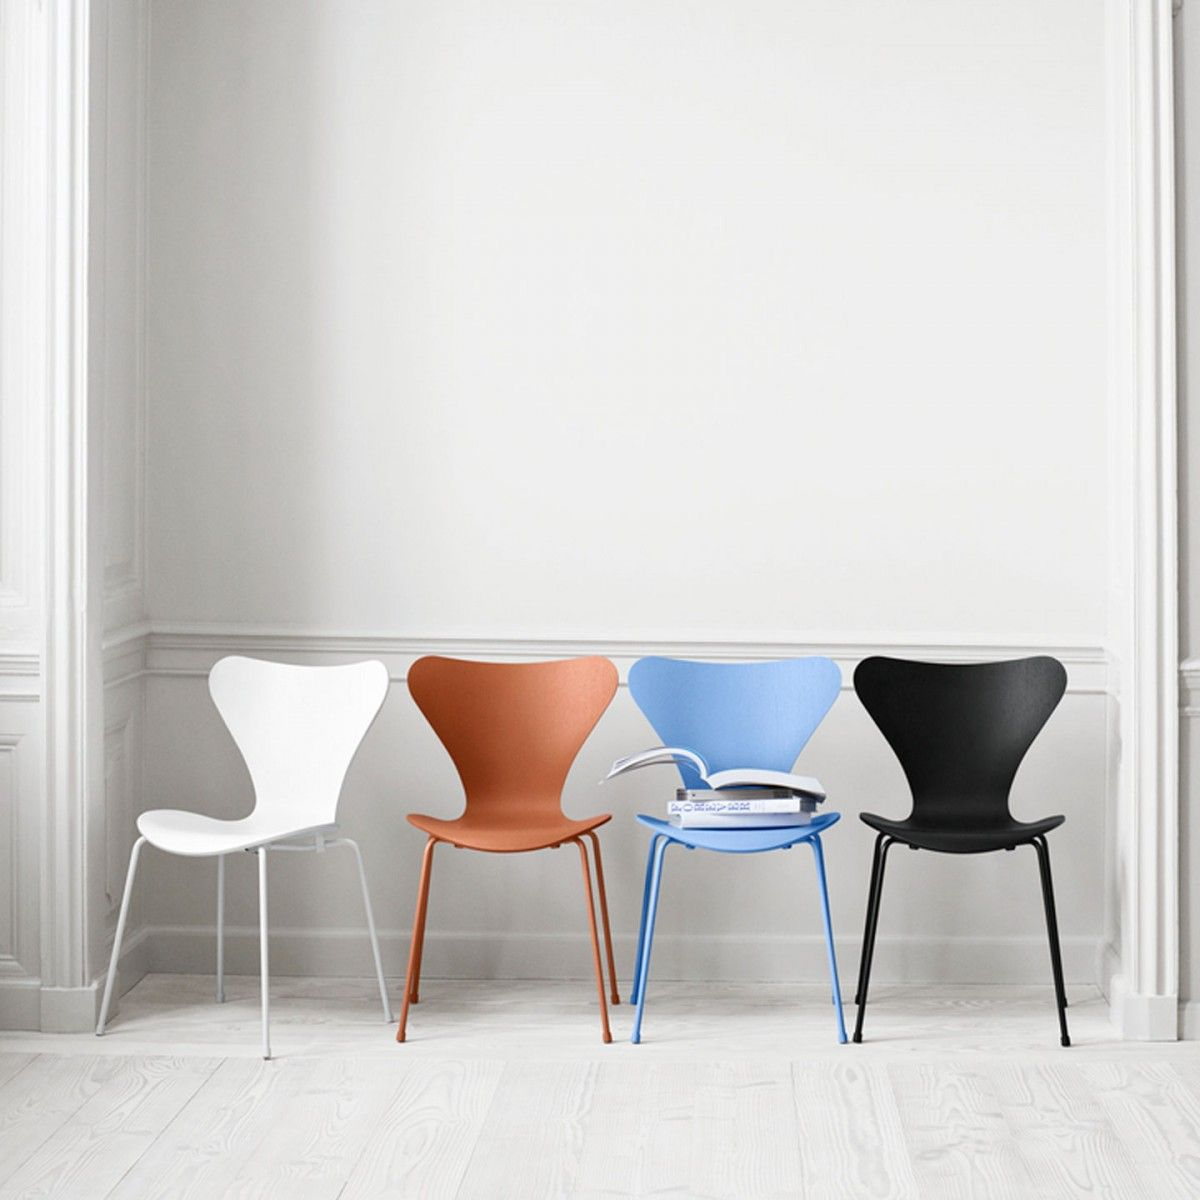 Arne jacobsen interior series  chair  lacquered by arne jacobsen for fritz hansen